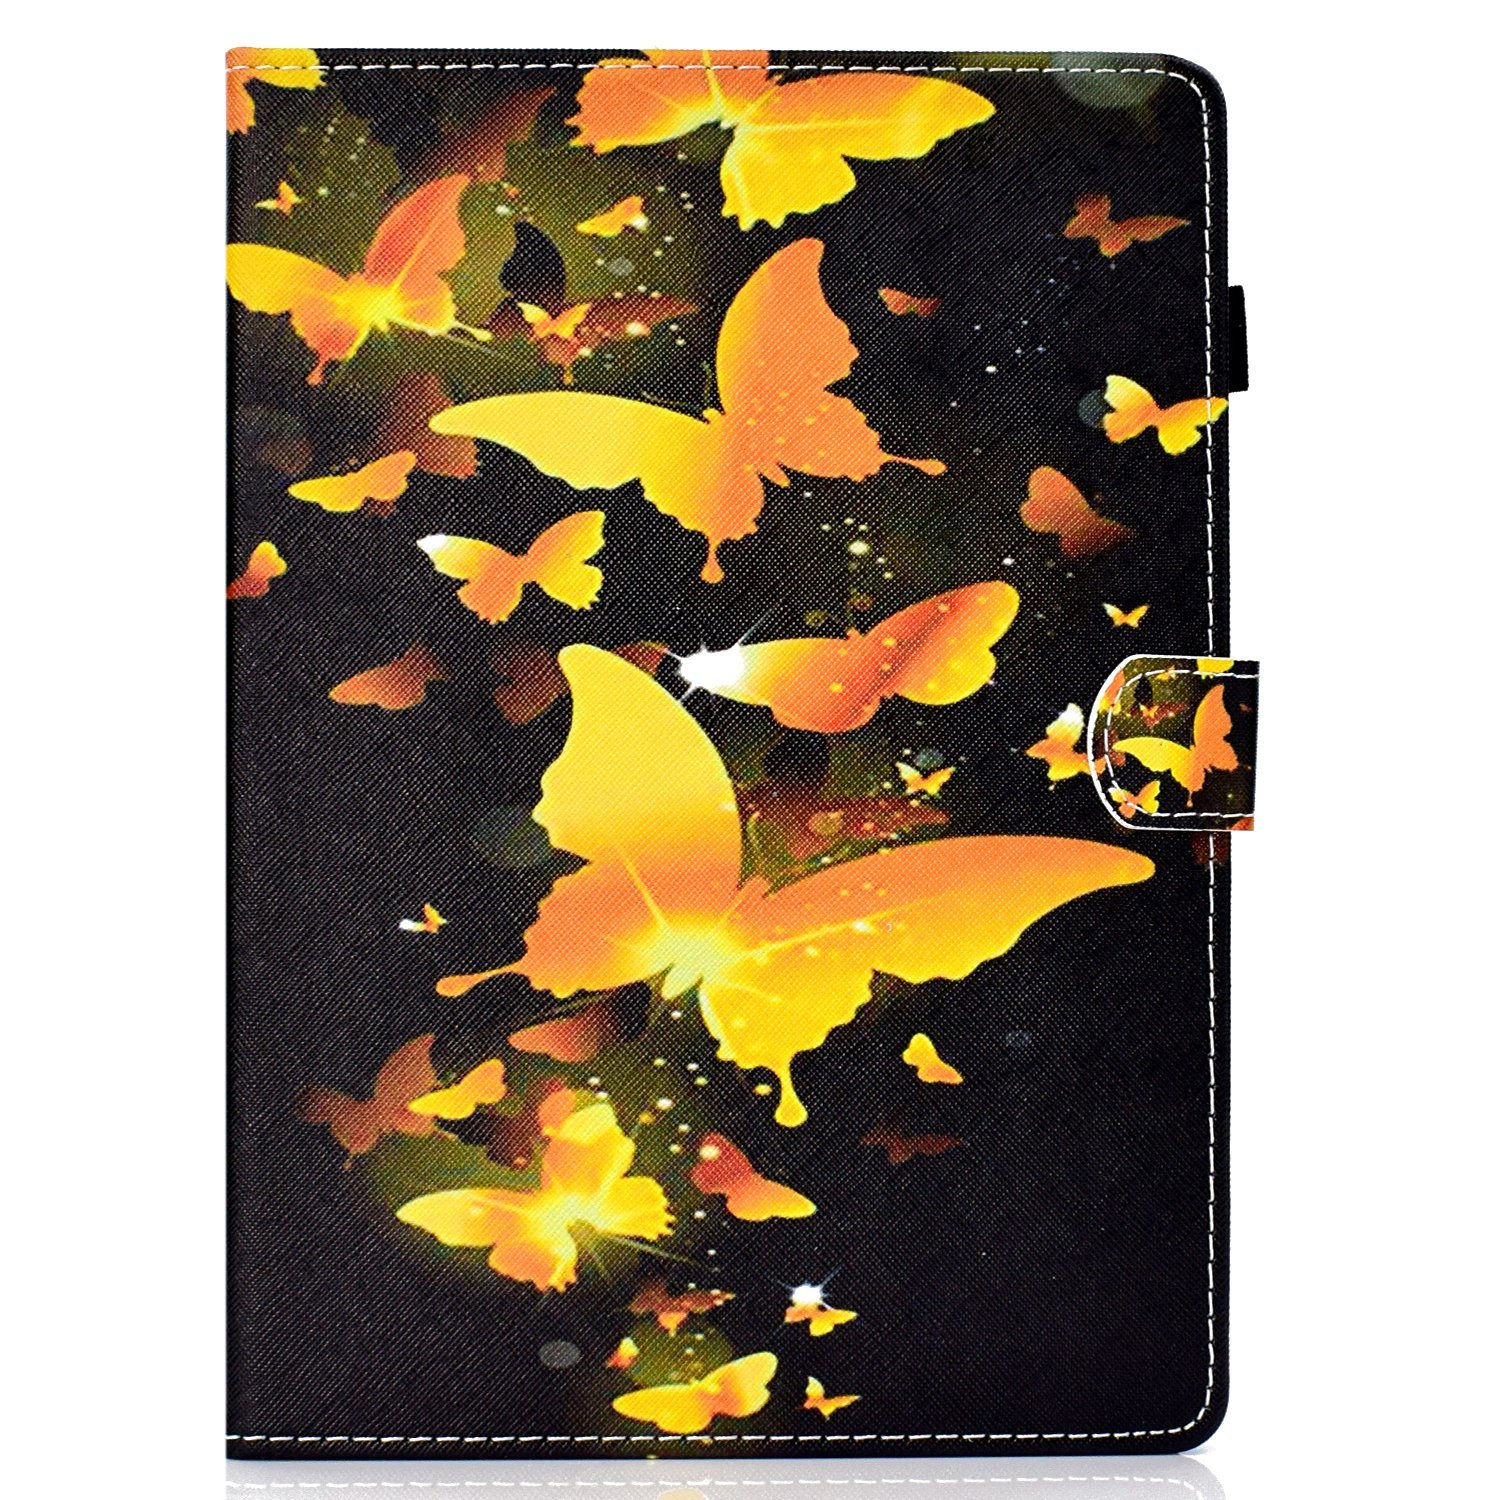 iPad 9.7 inch 2018 2017 Case//iPad Air Case//iPad Air 2 Case Uliking PU Leather Folio Smart Cover with Auto Sleep Wake Stand Wallet Cases and Covers for iPad 6th 5th Gen,iPad Air 1//2 Rainbow